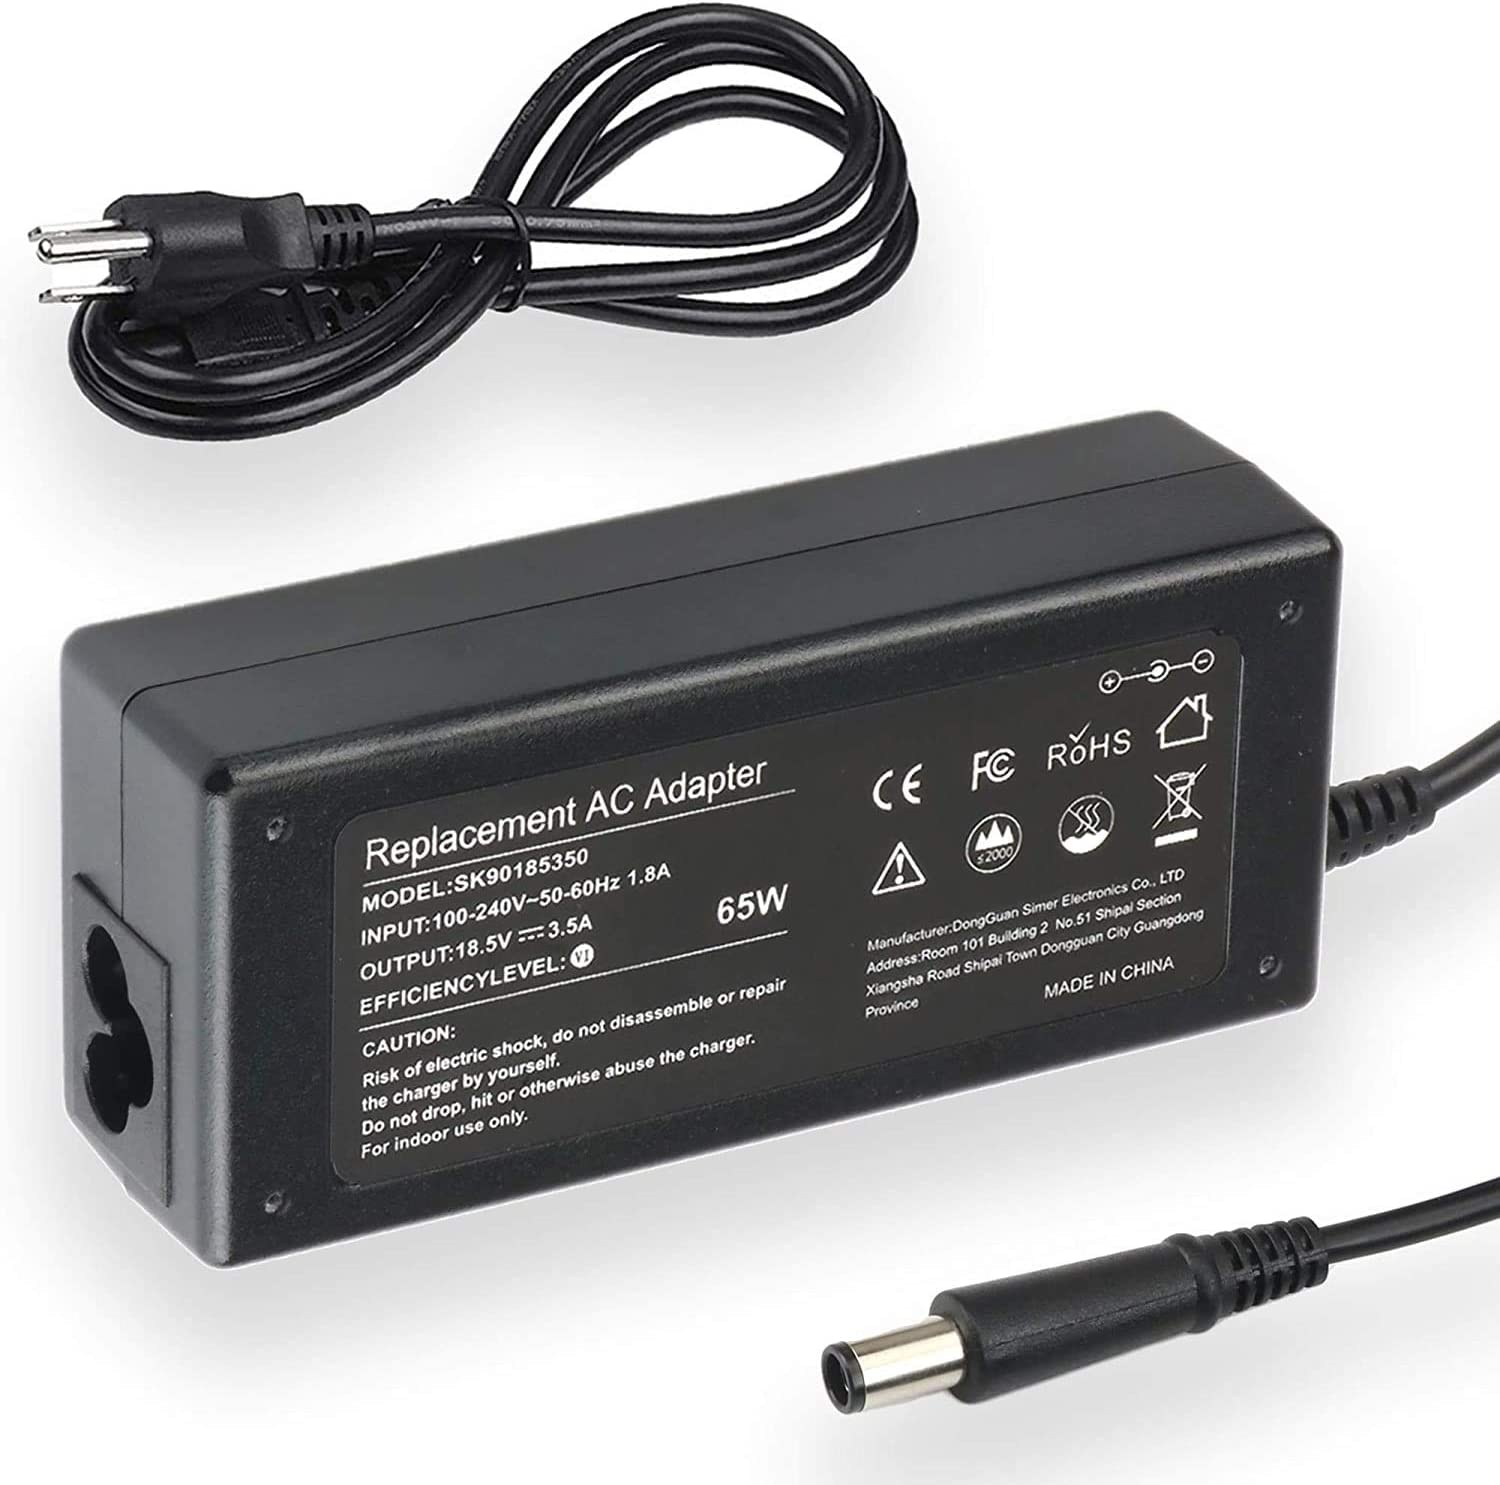 NEW Ac Adapter Charger Courier shipping Arlington Mall free replacement HP Pavilion for g7- g7-1260us